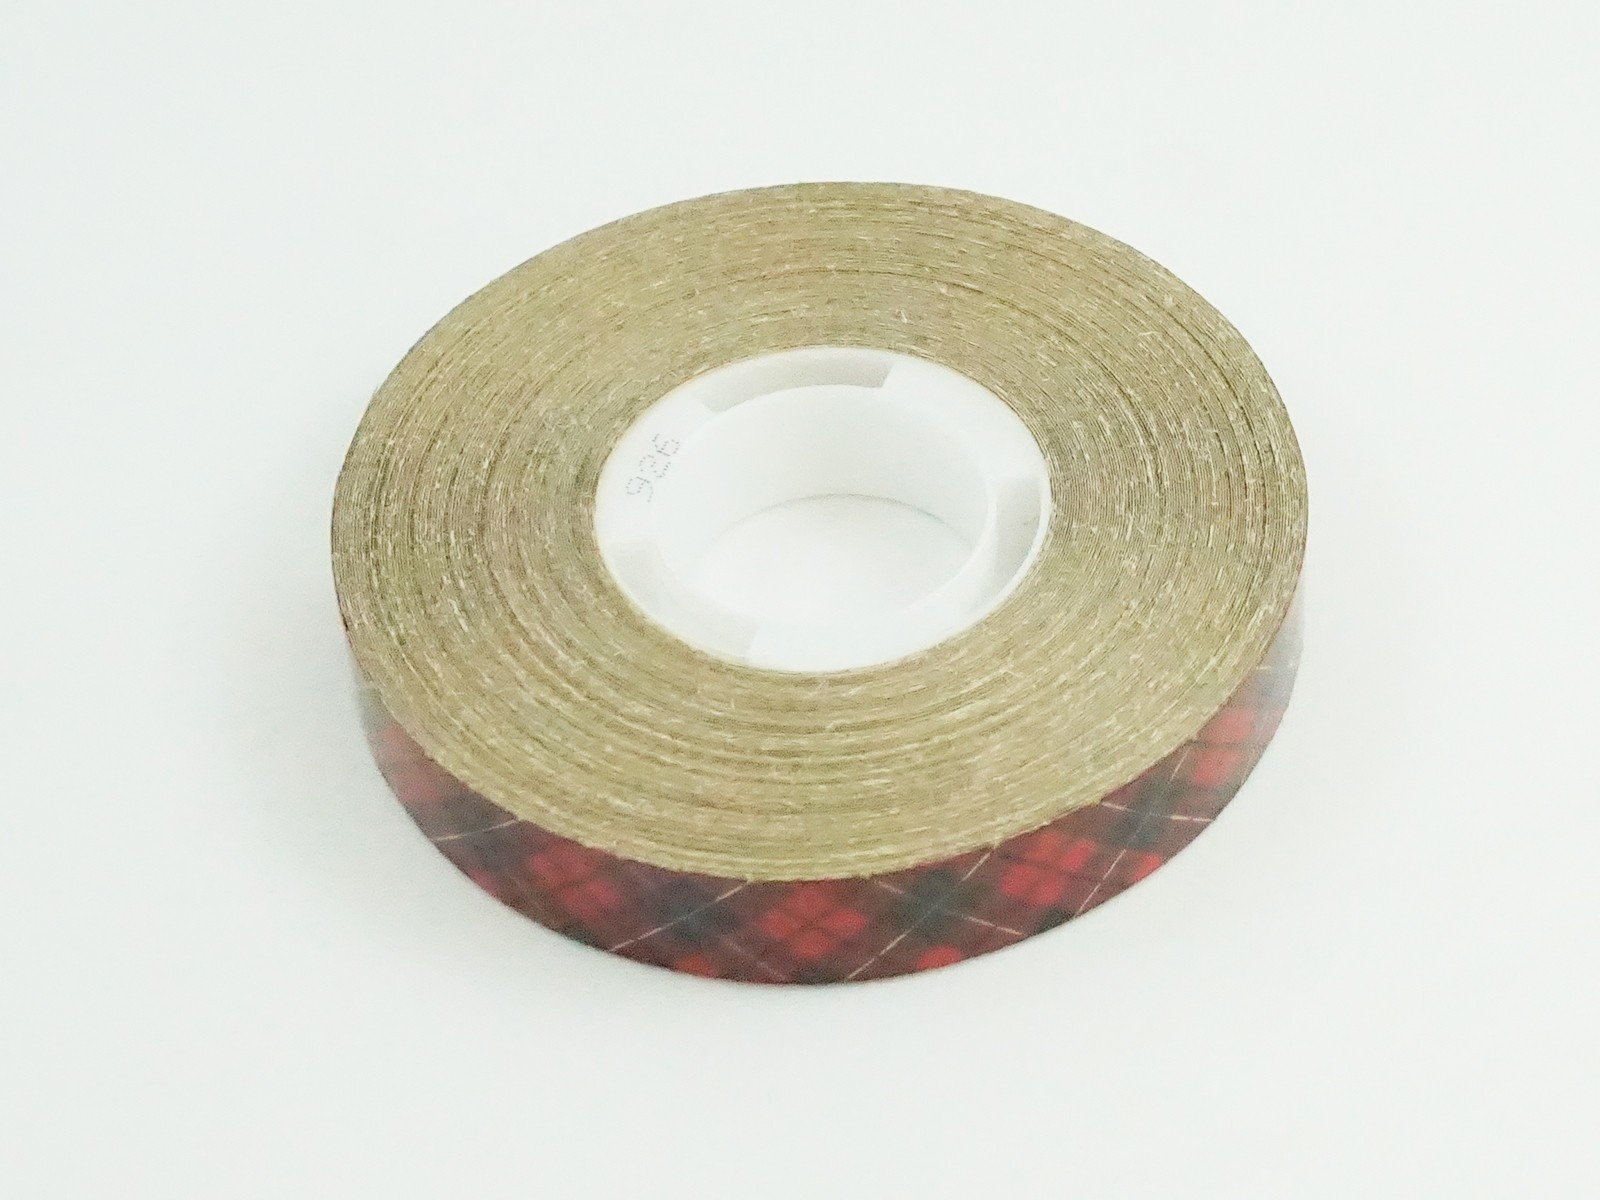 Pure Adhesive Tape 1/2 in x 18 yd